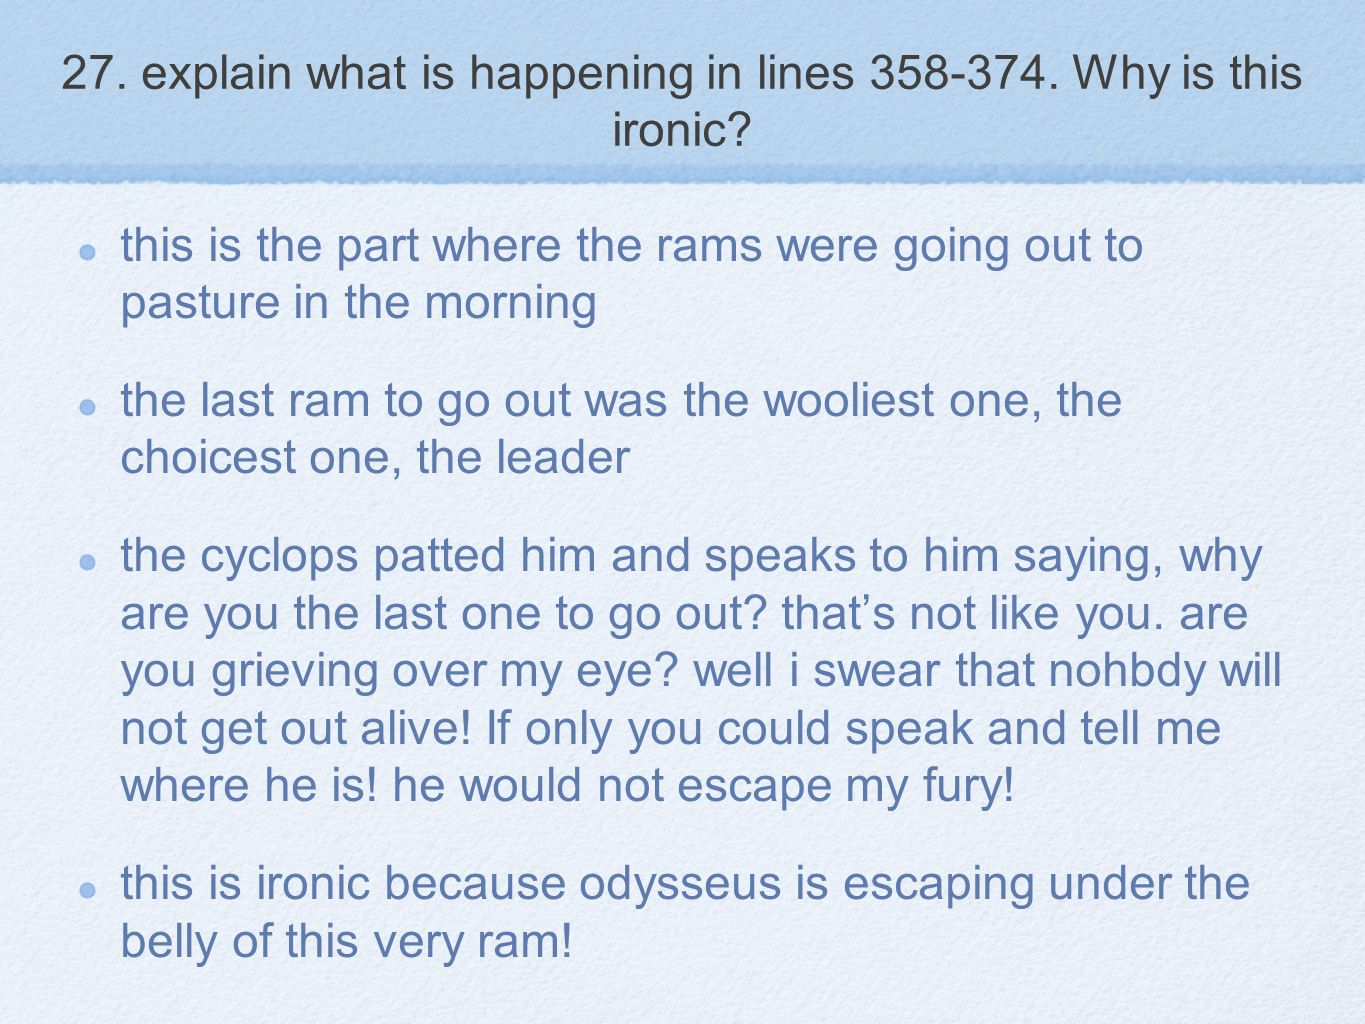 27. explain what is happening in lines 358-374. Why is this ironic